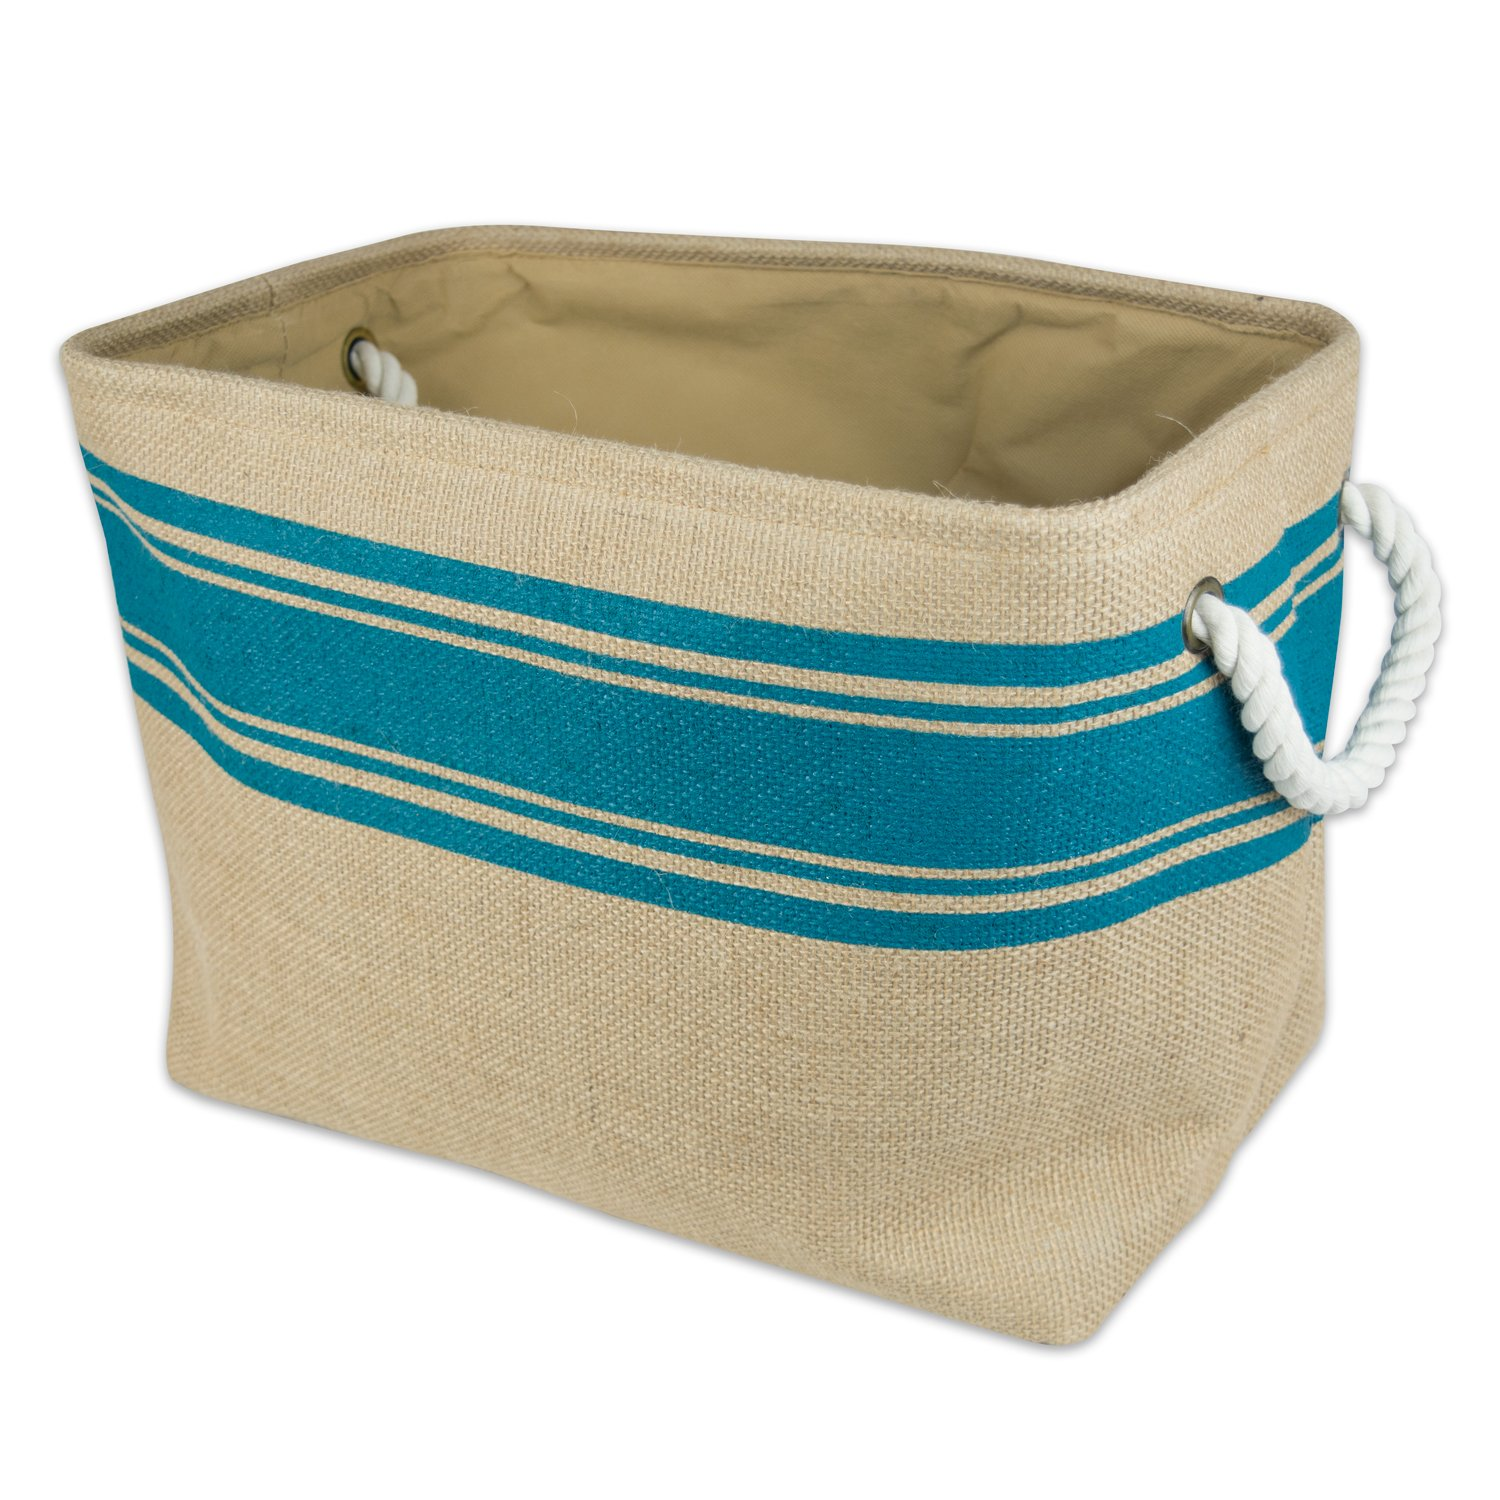 DII Collapsible Burlap Storage Basket or Bin with Durable Cotton Handles, Home Organizational Solution for Office, Bedroom, Closet, Toys, Laundry (Large – 18x12x15), Teal Border